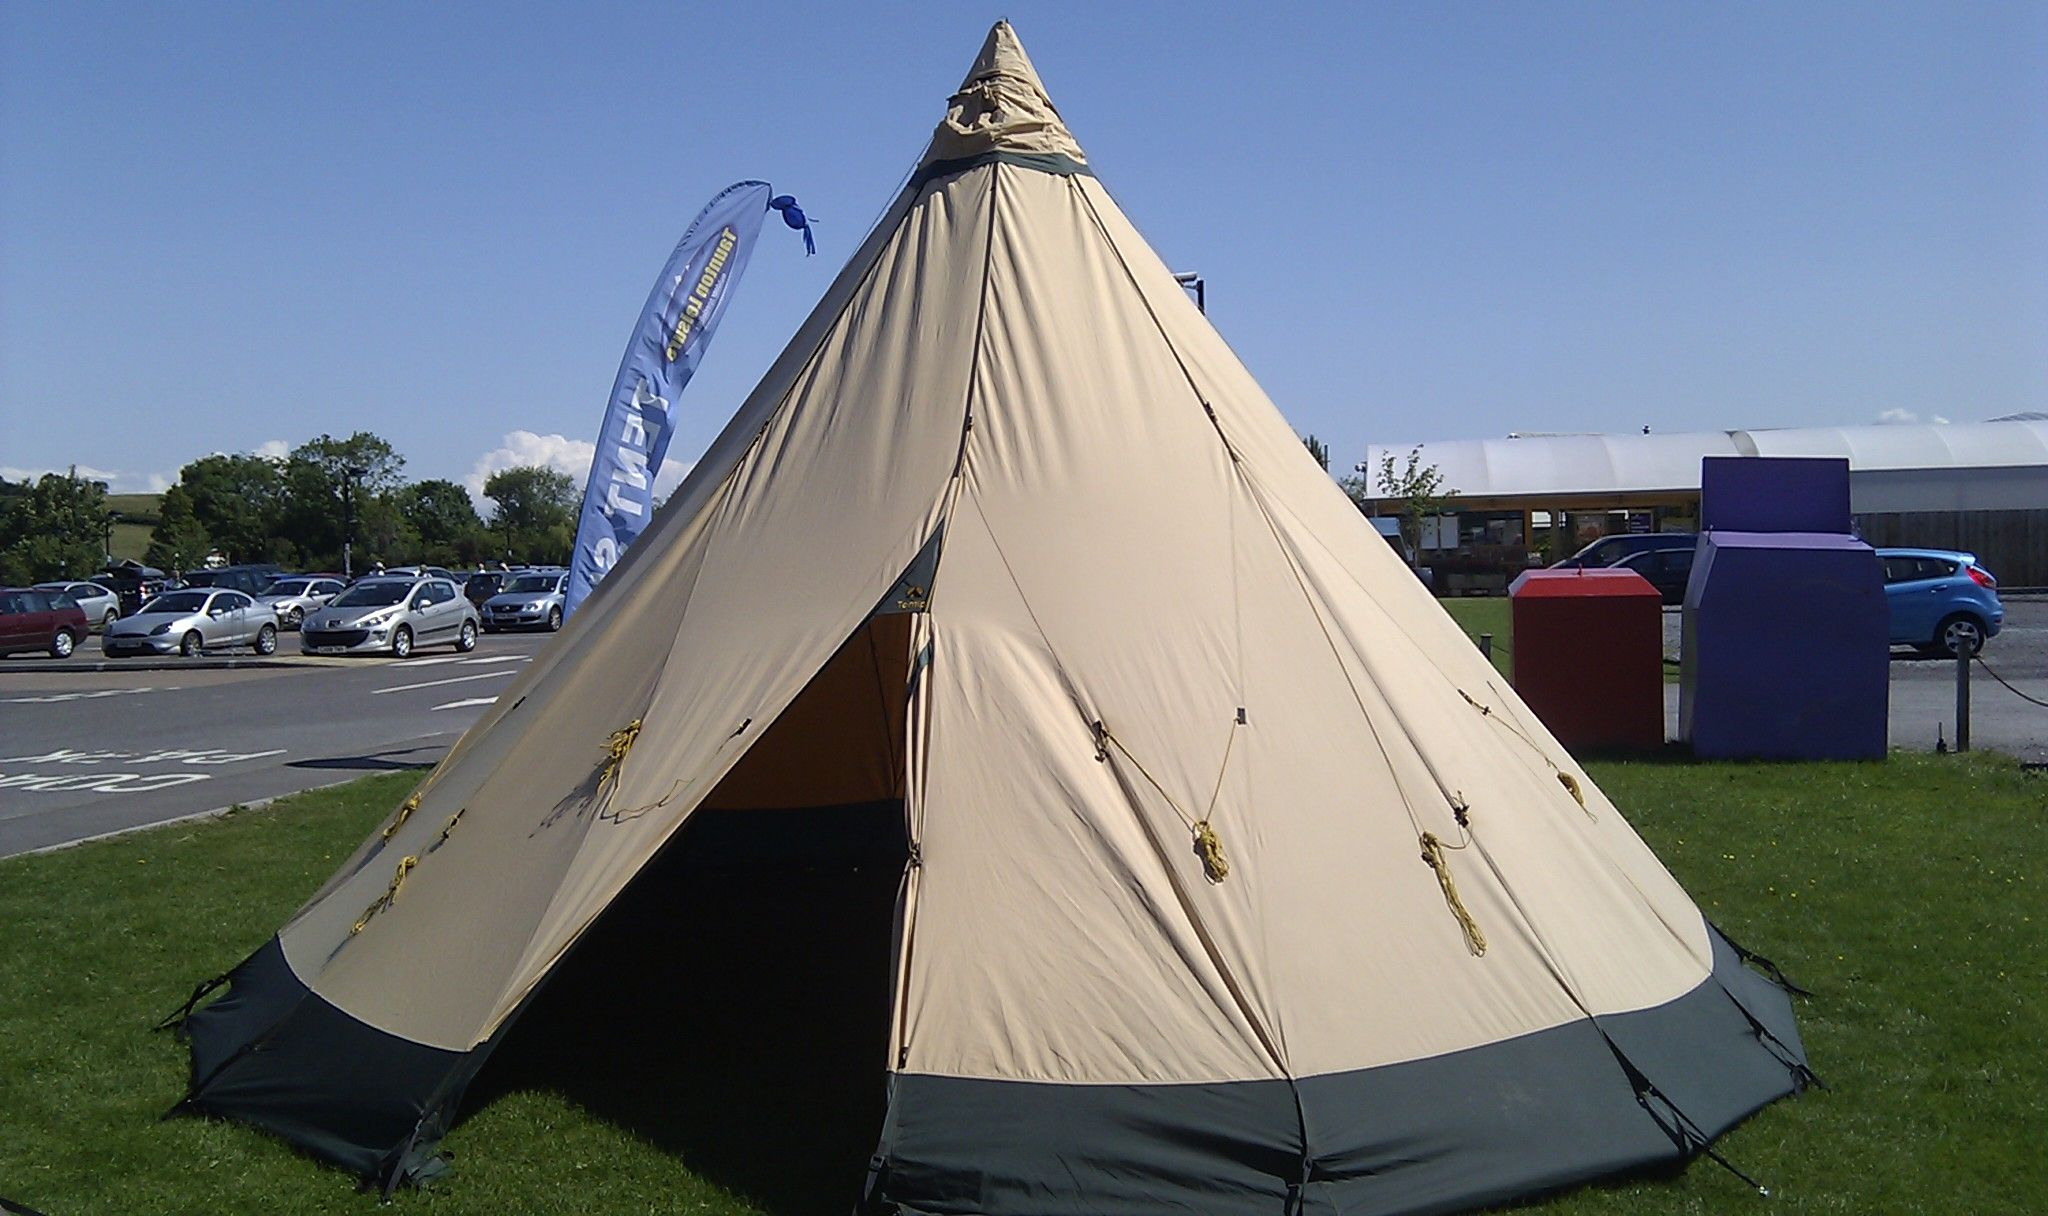 Outwell Hilo Reef Tent - 2013 from Taunton Leisure Ltd | C&ing | Pinterest | Outdoor clothing Tents and C&ing & I want that one!!! Outwell Hilo Reef Tent - 2013 from Taunton ...